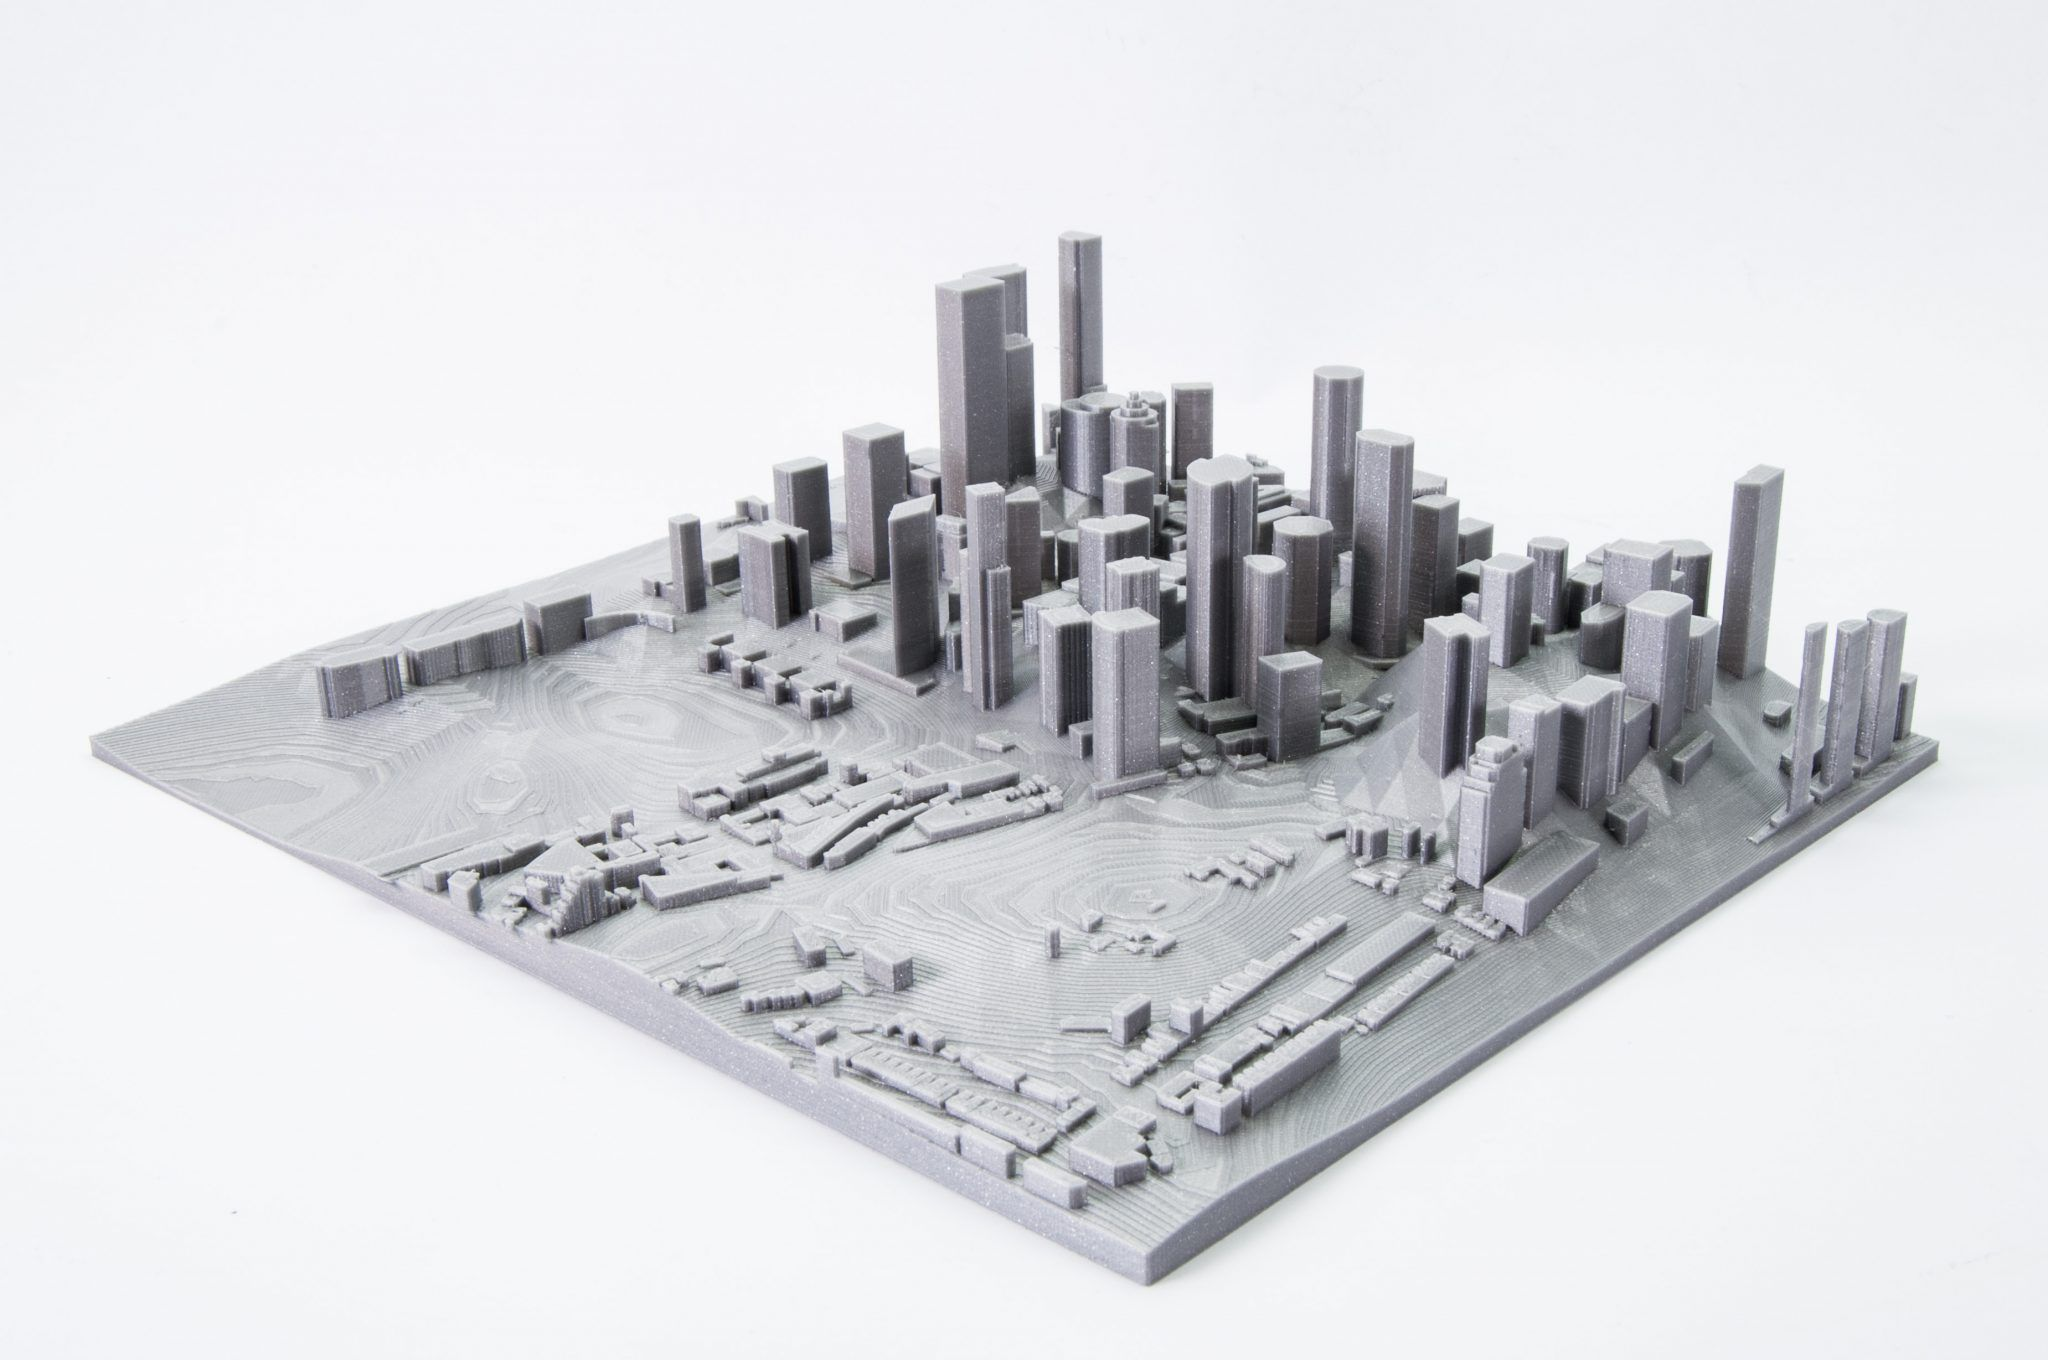 How to print maps, terrains and landscapes on a 3D printer